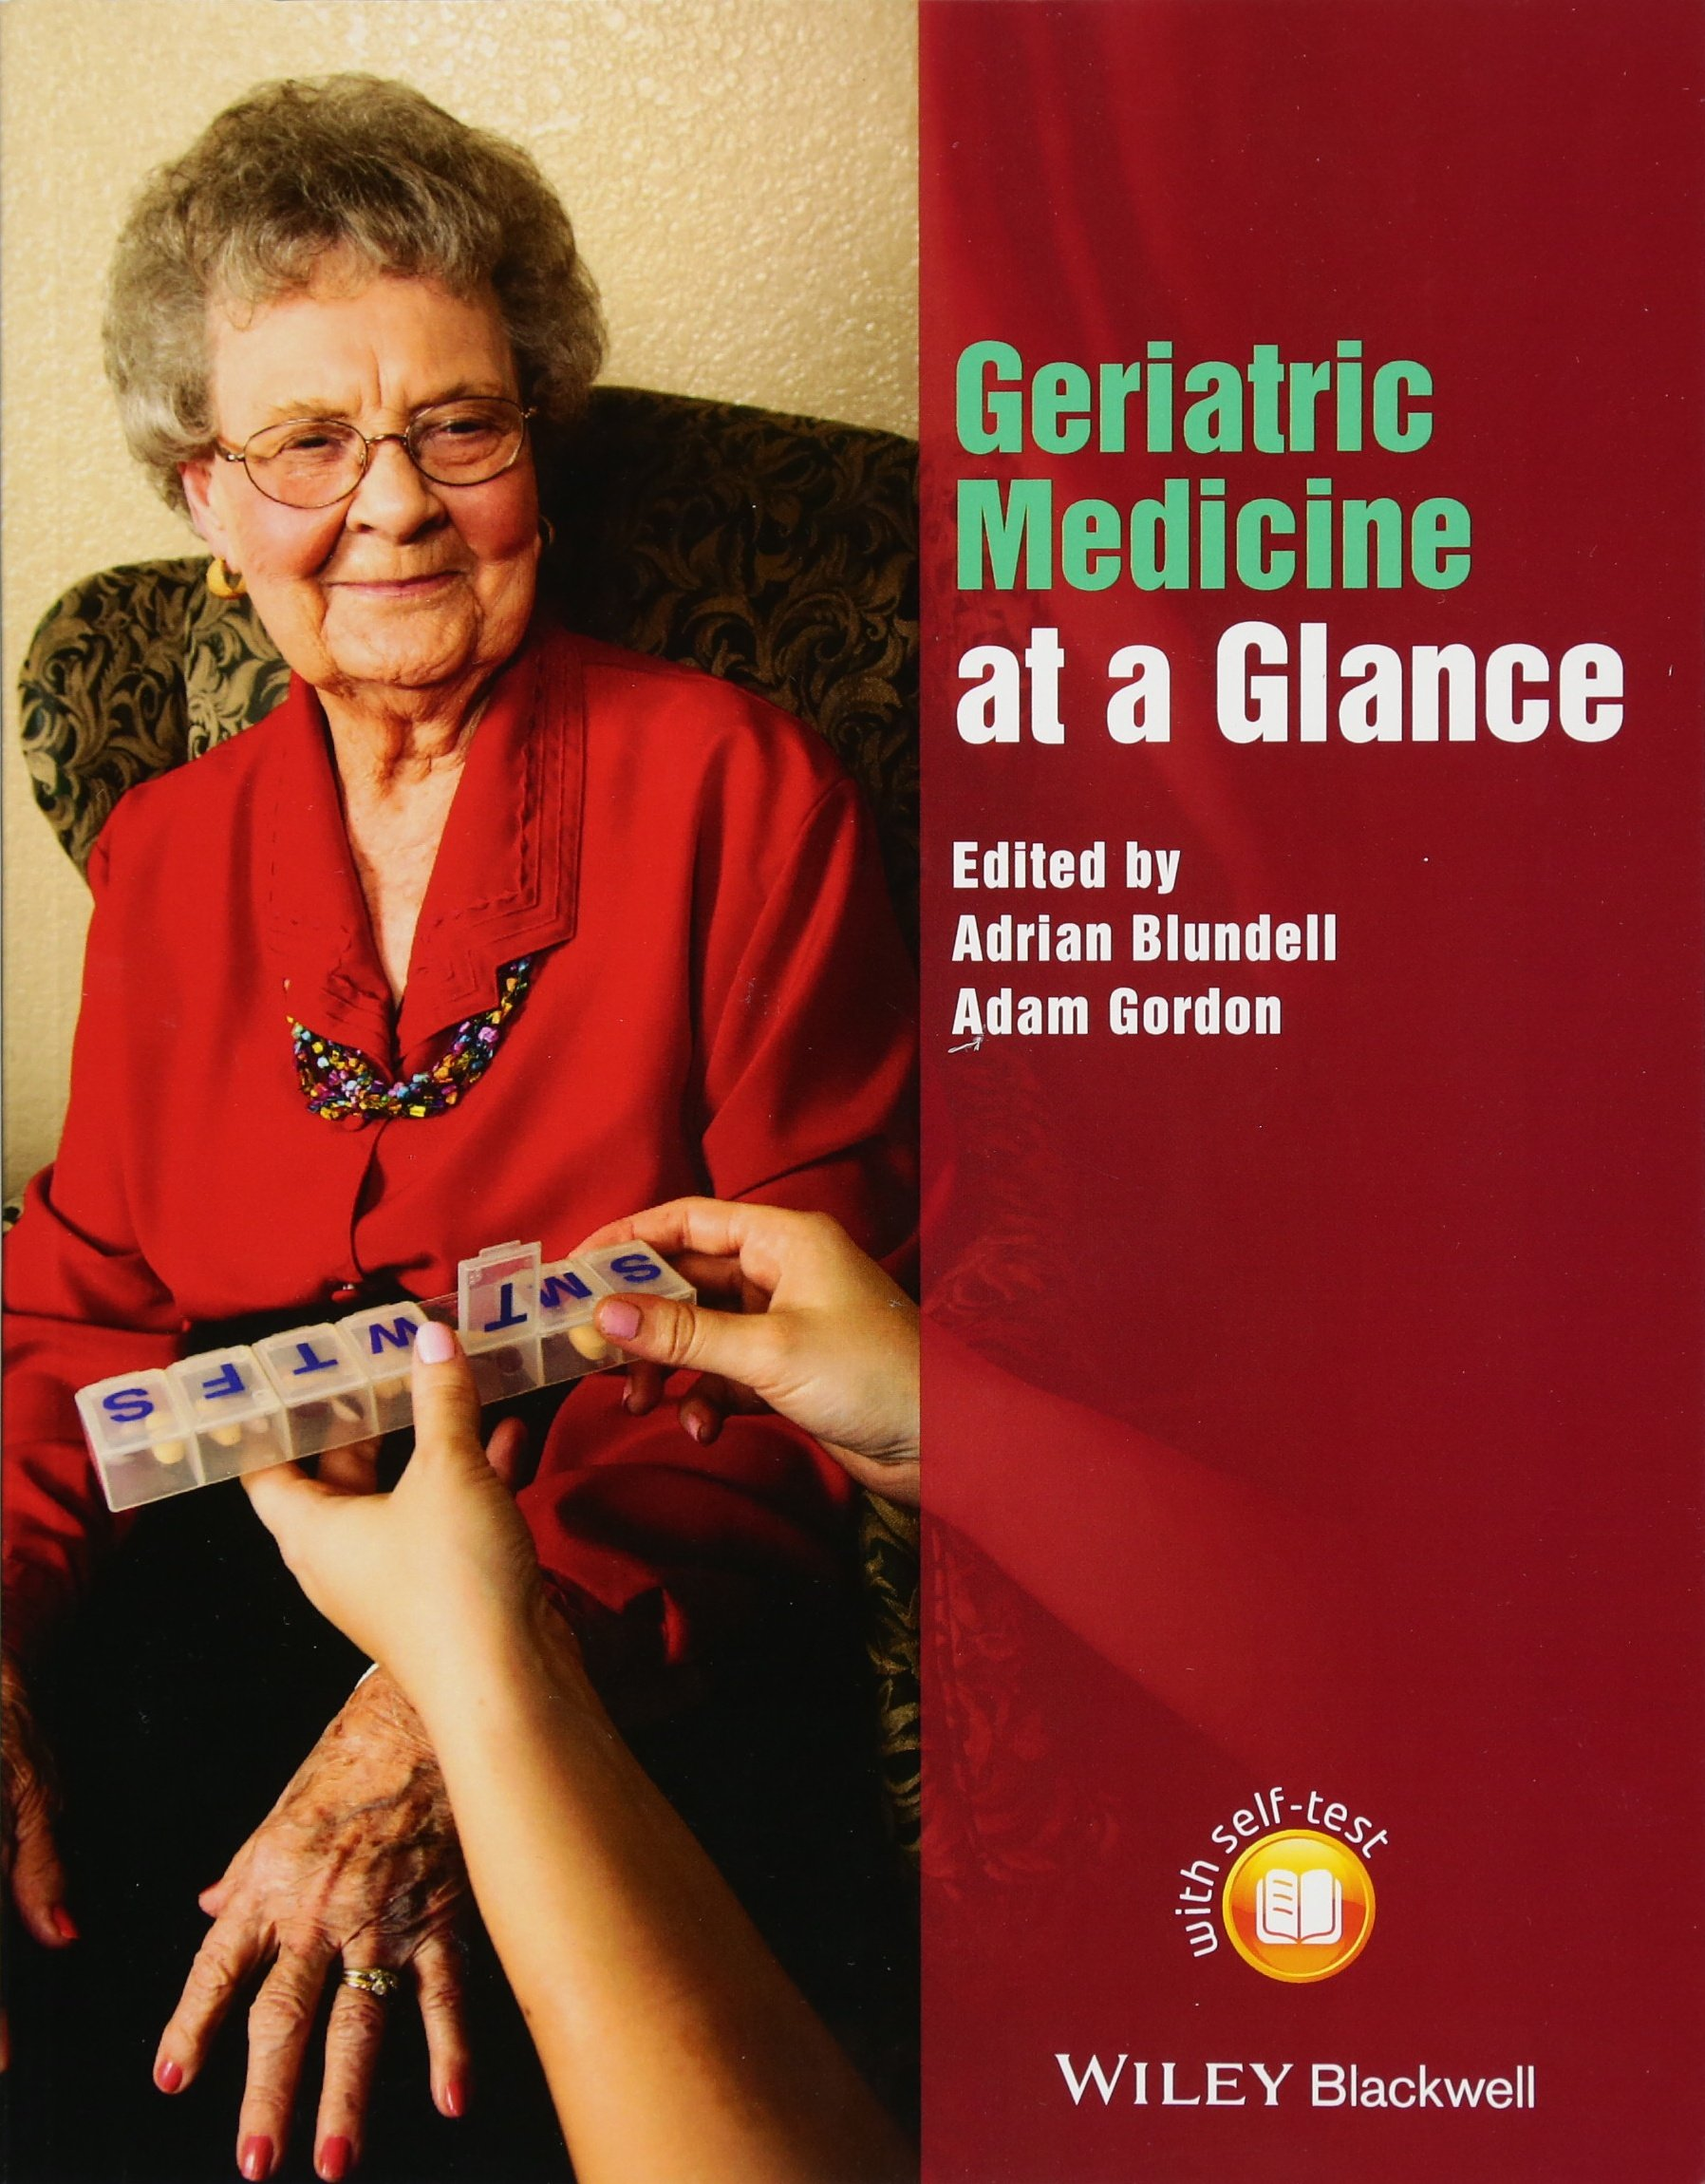 Geriatric Medicine at a Glance: Amazon co uk: Adrian